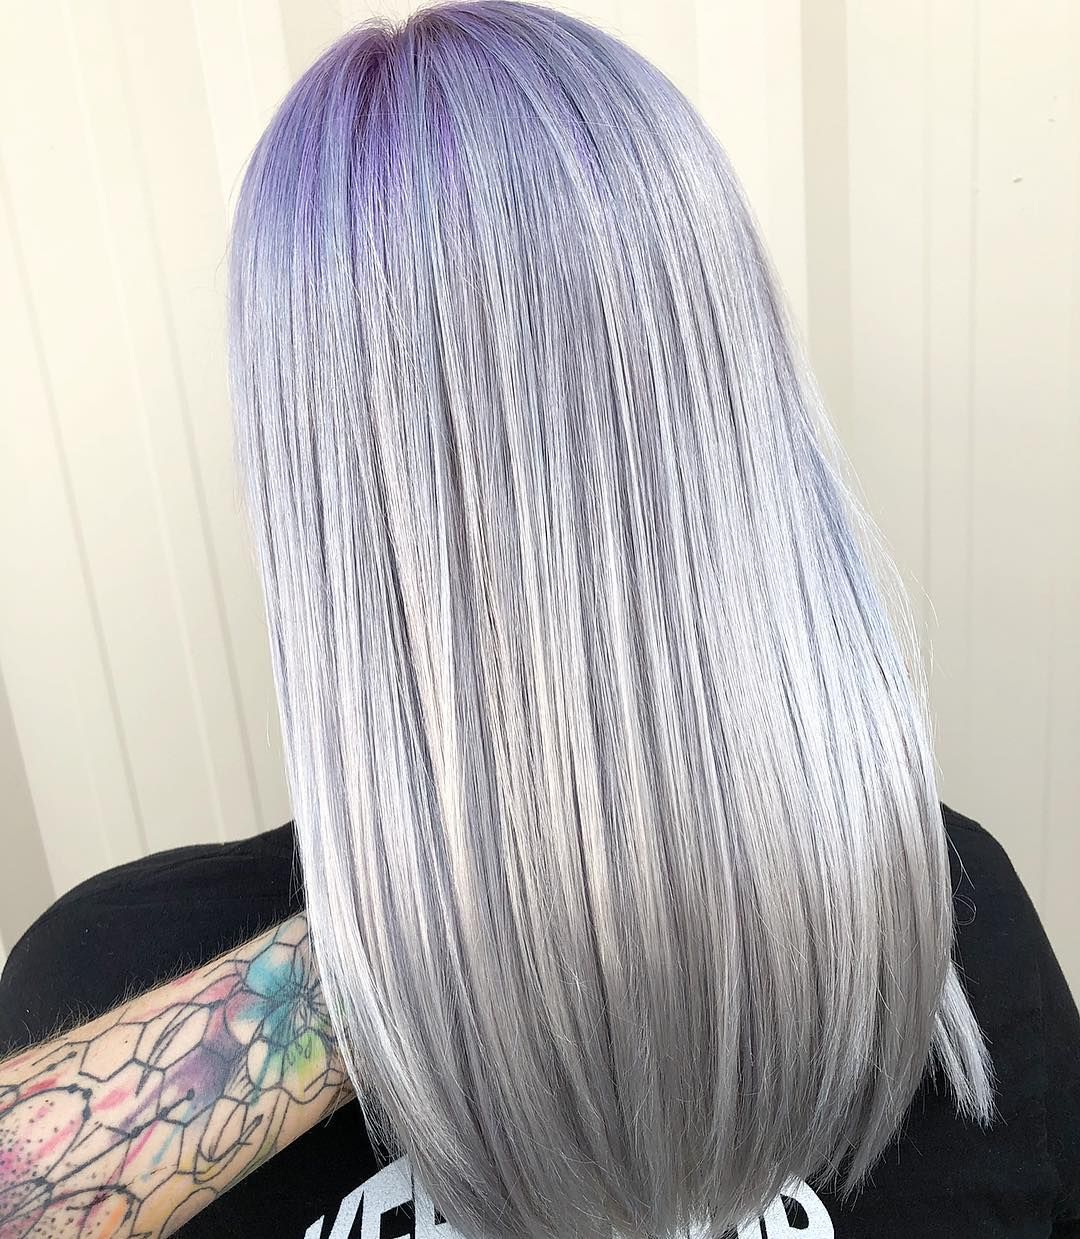 Smoked Out Used Matrix Socolorcult Lavender Macaroon Marble Grey 1 1 At Her Root Blending Down Into The Same Lavender Hair Perfect Hair Silver Hair